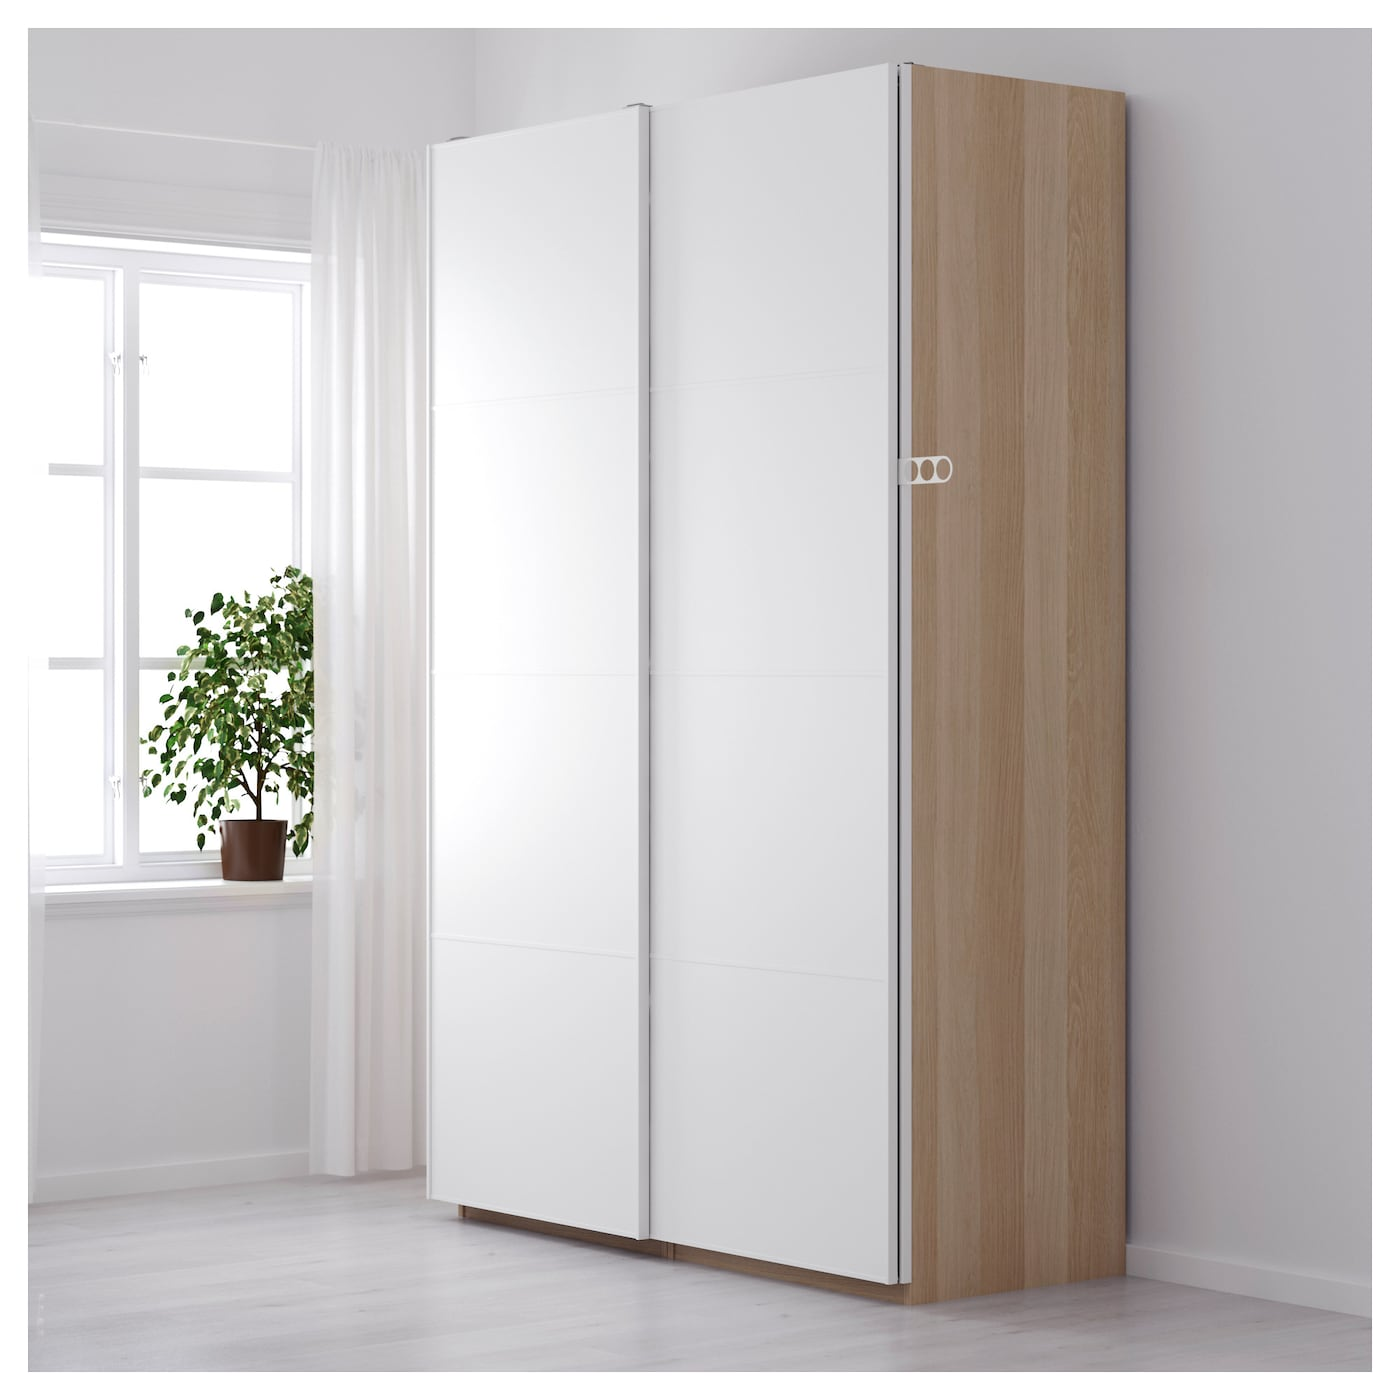 pax armoire penderie effet ch ne blanchi mehamn blanc 150x66x236 cm ikea. Black Bedroom Furniture Sets. Home Design Ideas